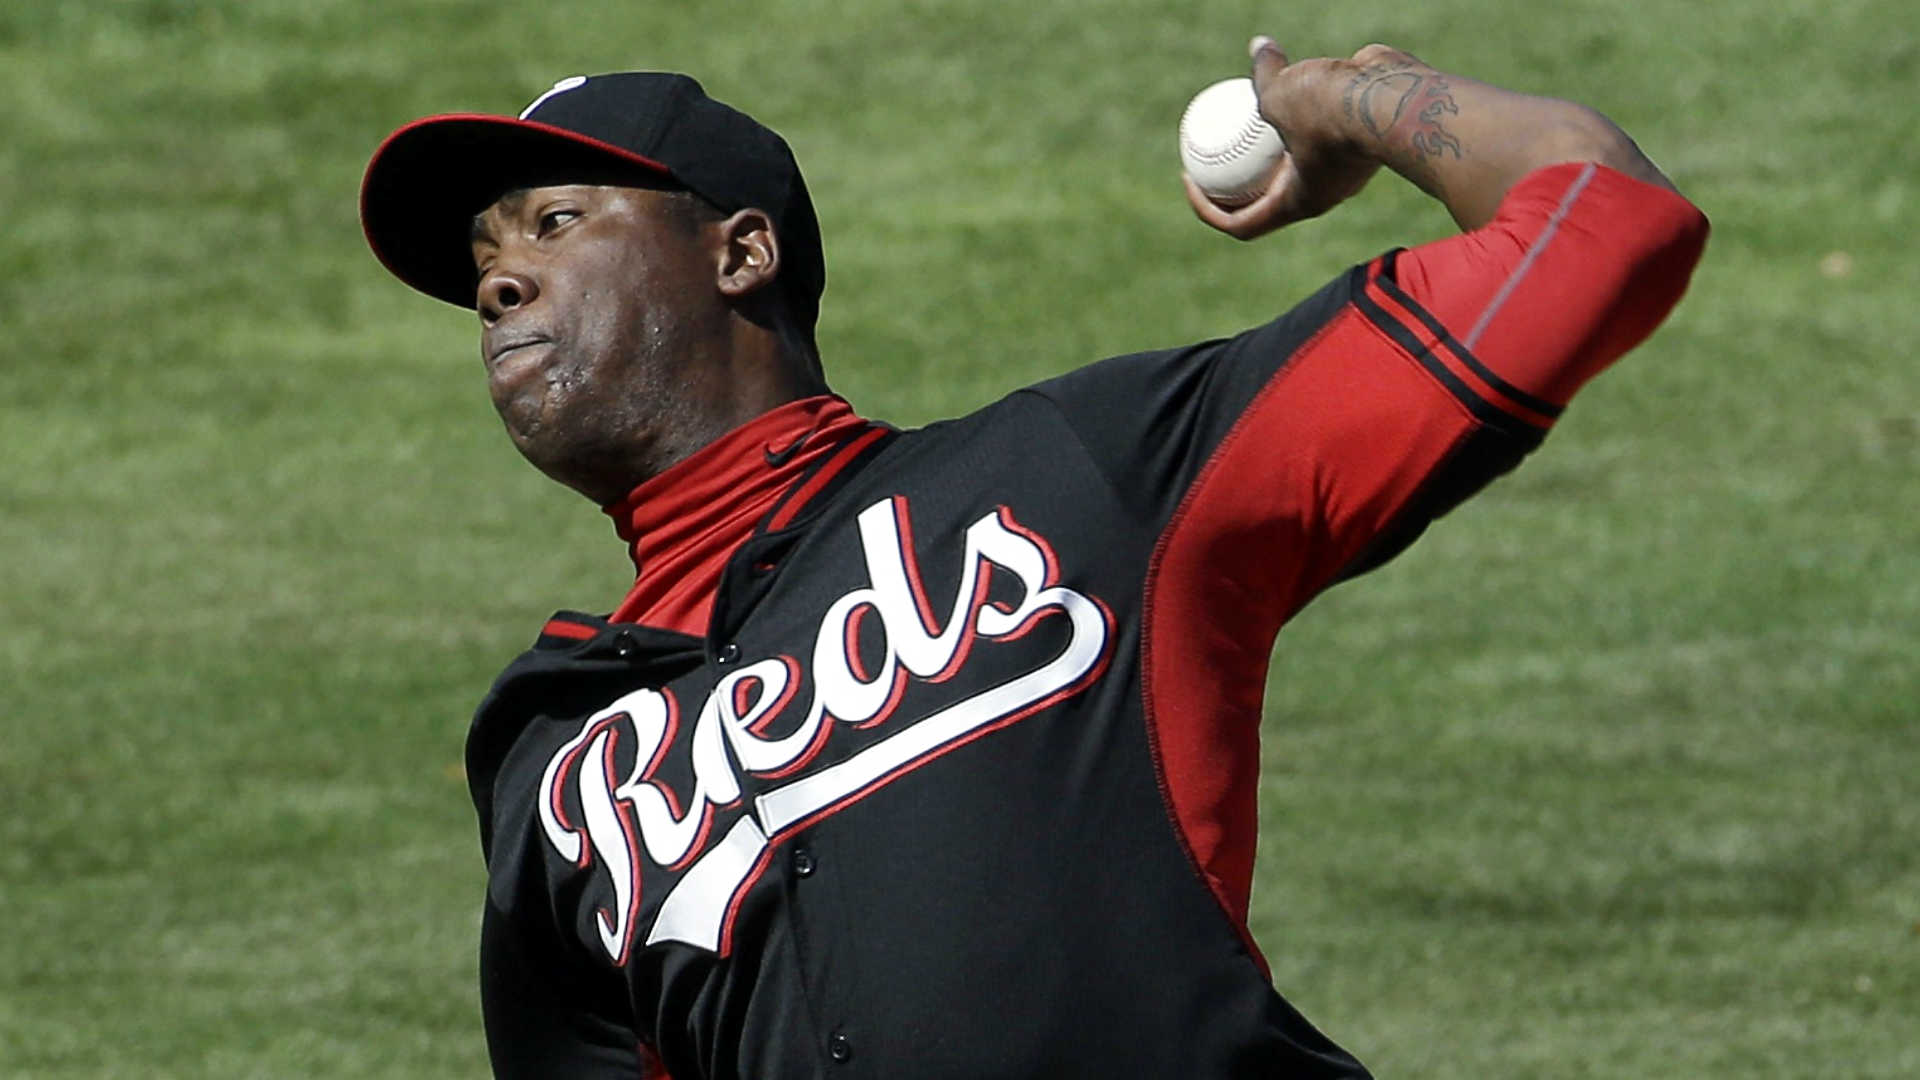 Closer Watch: Aroldis Chapman out, Reds assess fill-in closers